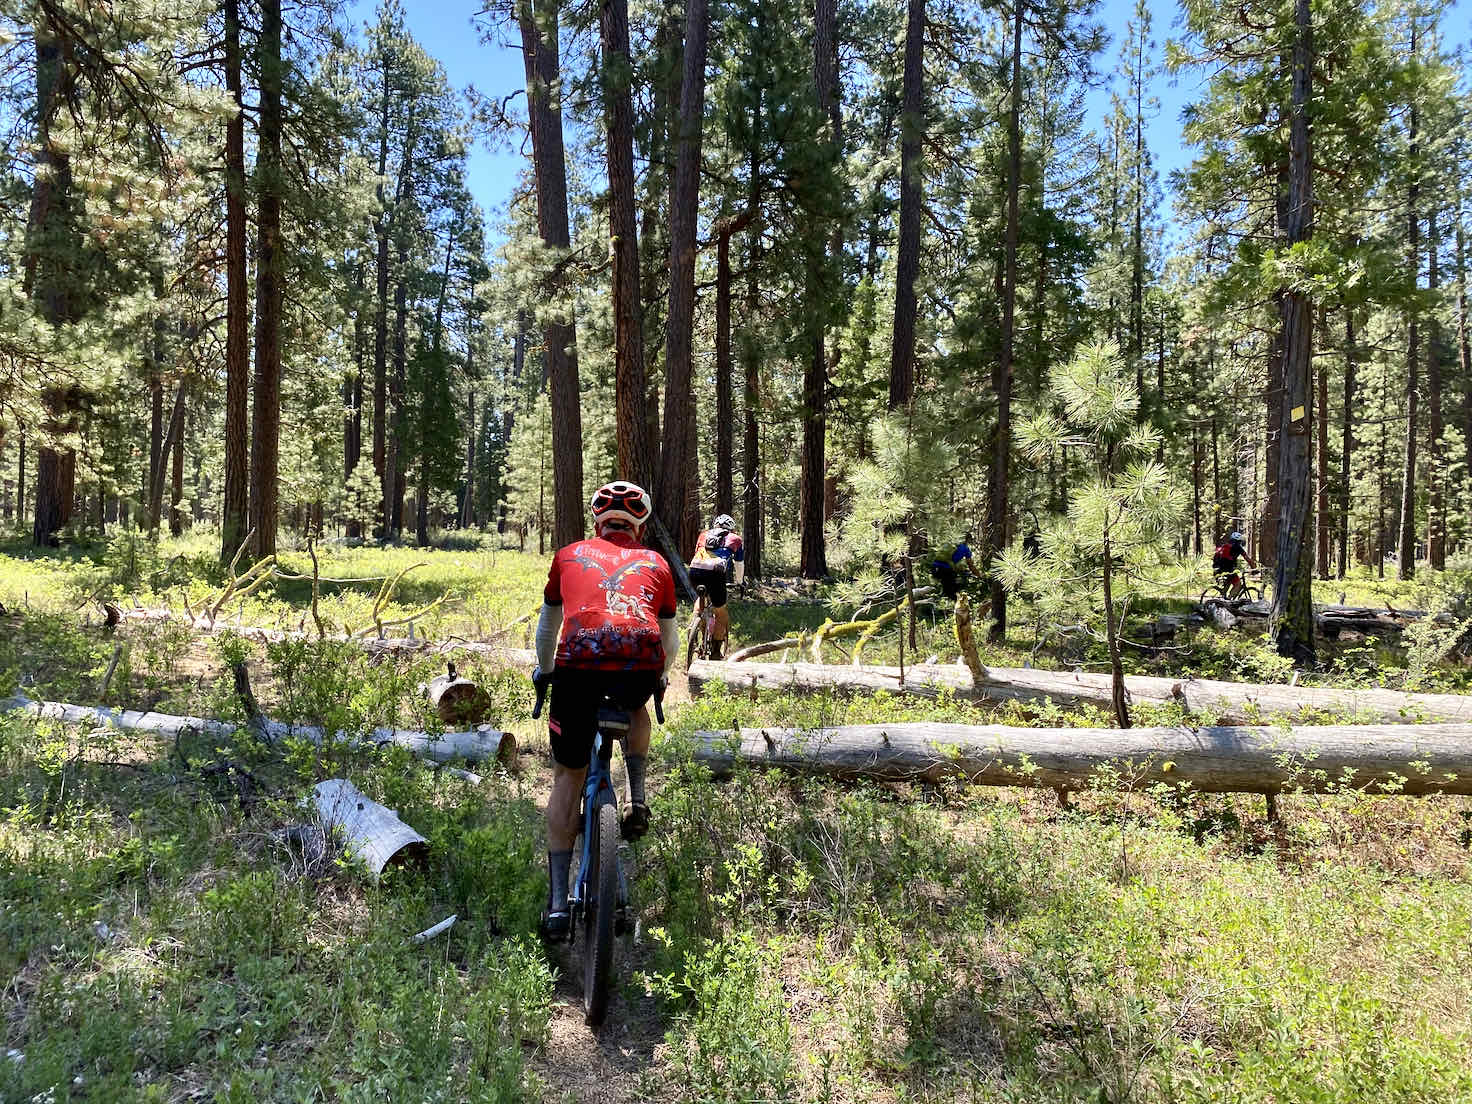 Riding the single track on the east side of Black Butte with gravel bike.